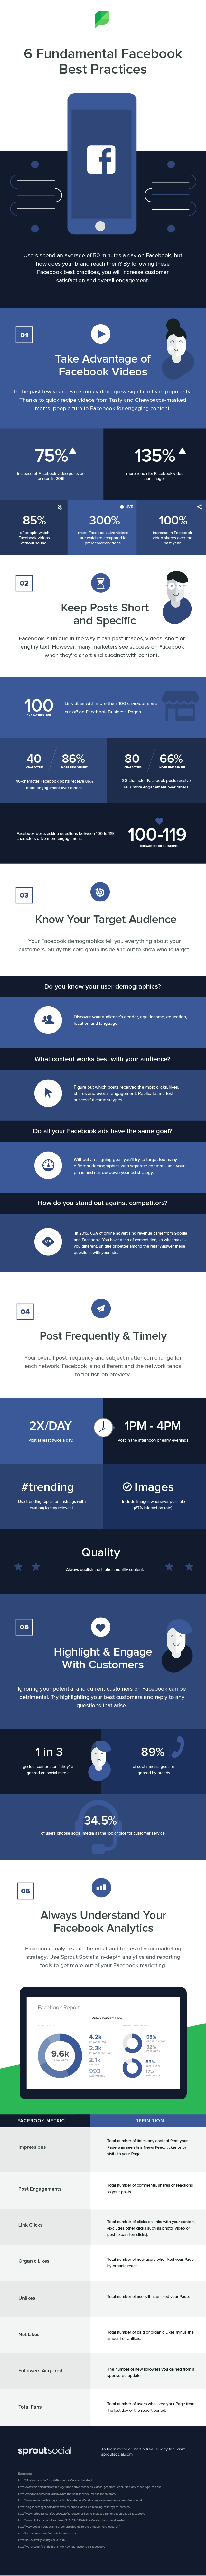 The 6 Fundamental Facebook Best Practices [Infographic]